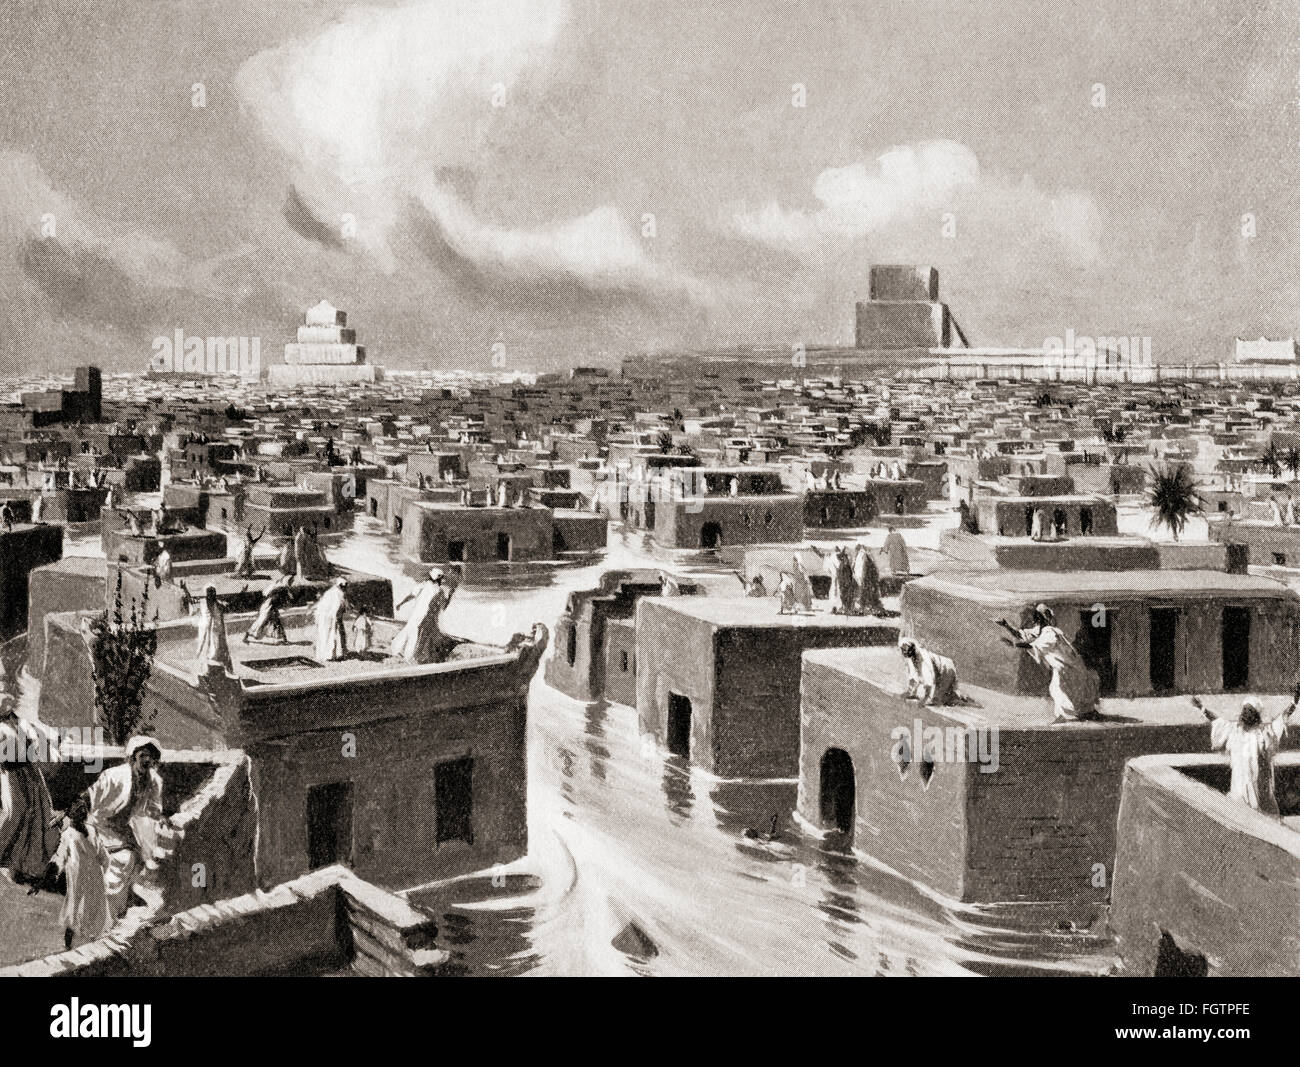 The destruction of Babylon by Sennacherib in 689 BC, when he diverted the course of the Euphrates so that its waters Stock Photo